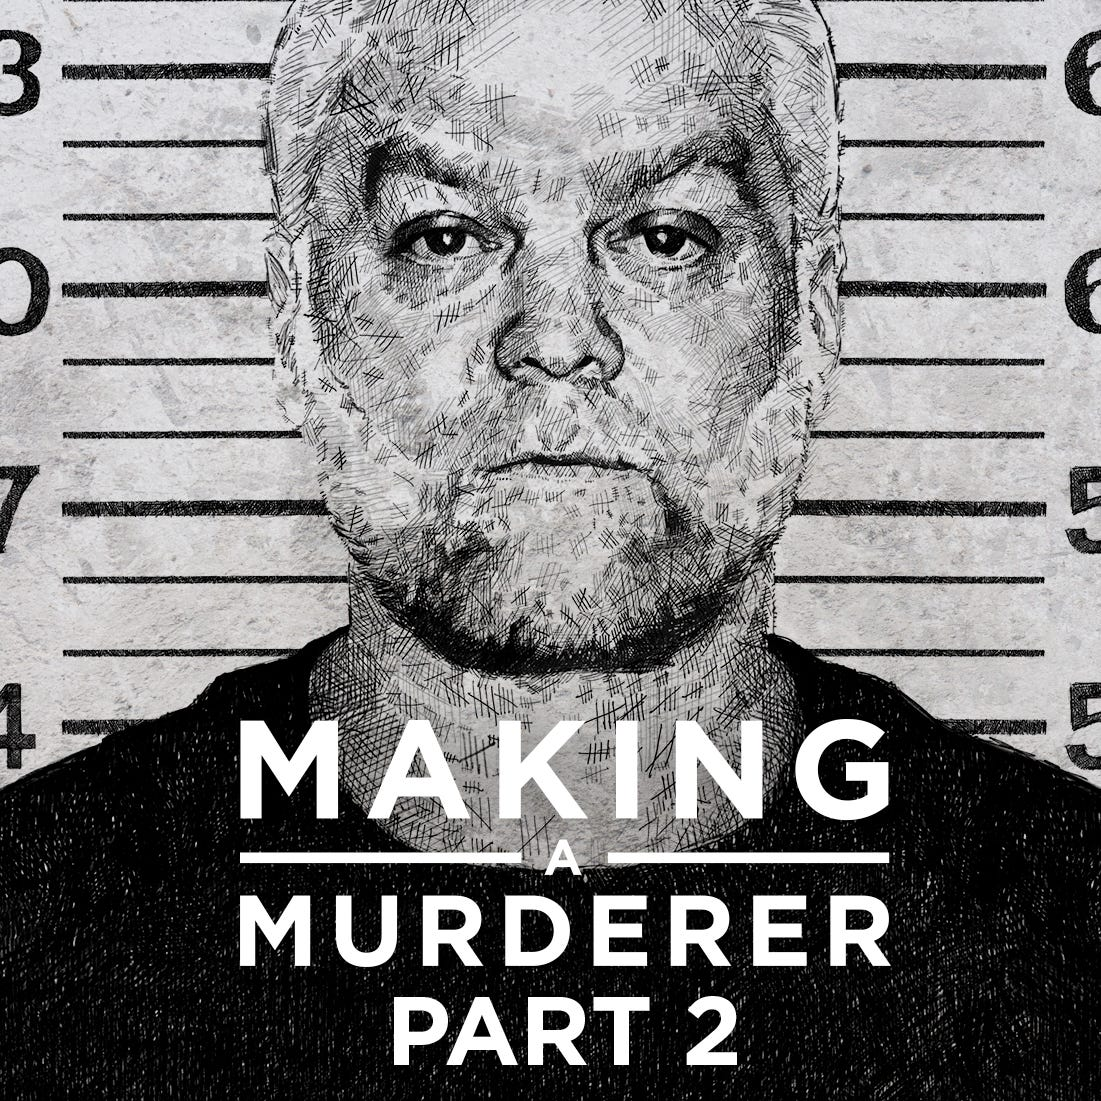 'Making a Murderer Part 2' attorneys: Series highlights painstaking post-conviction process